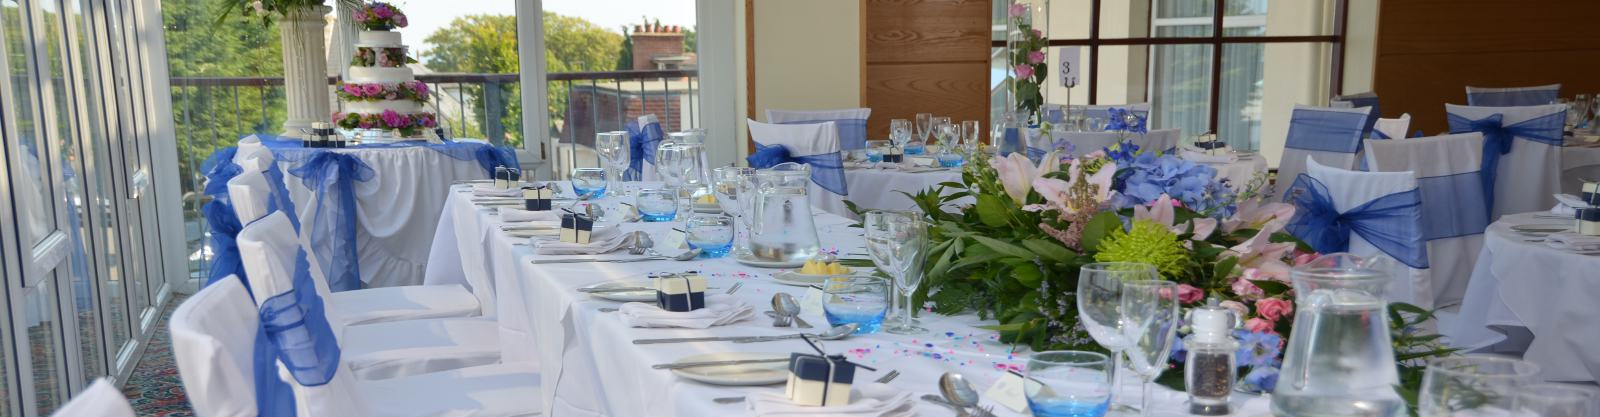 wedding-venue-bournemouth-riviera-hotel